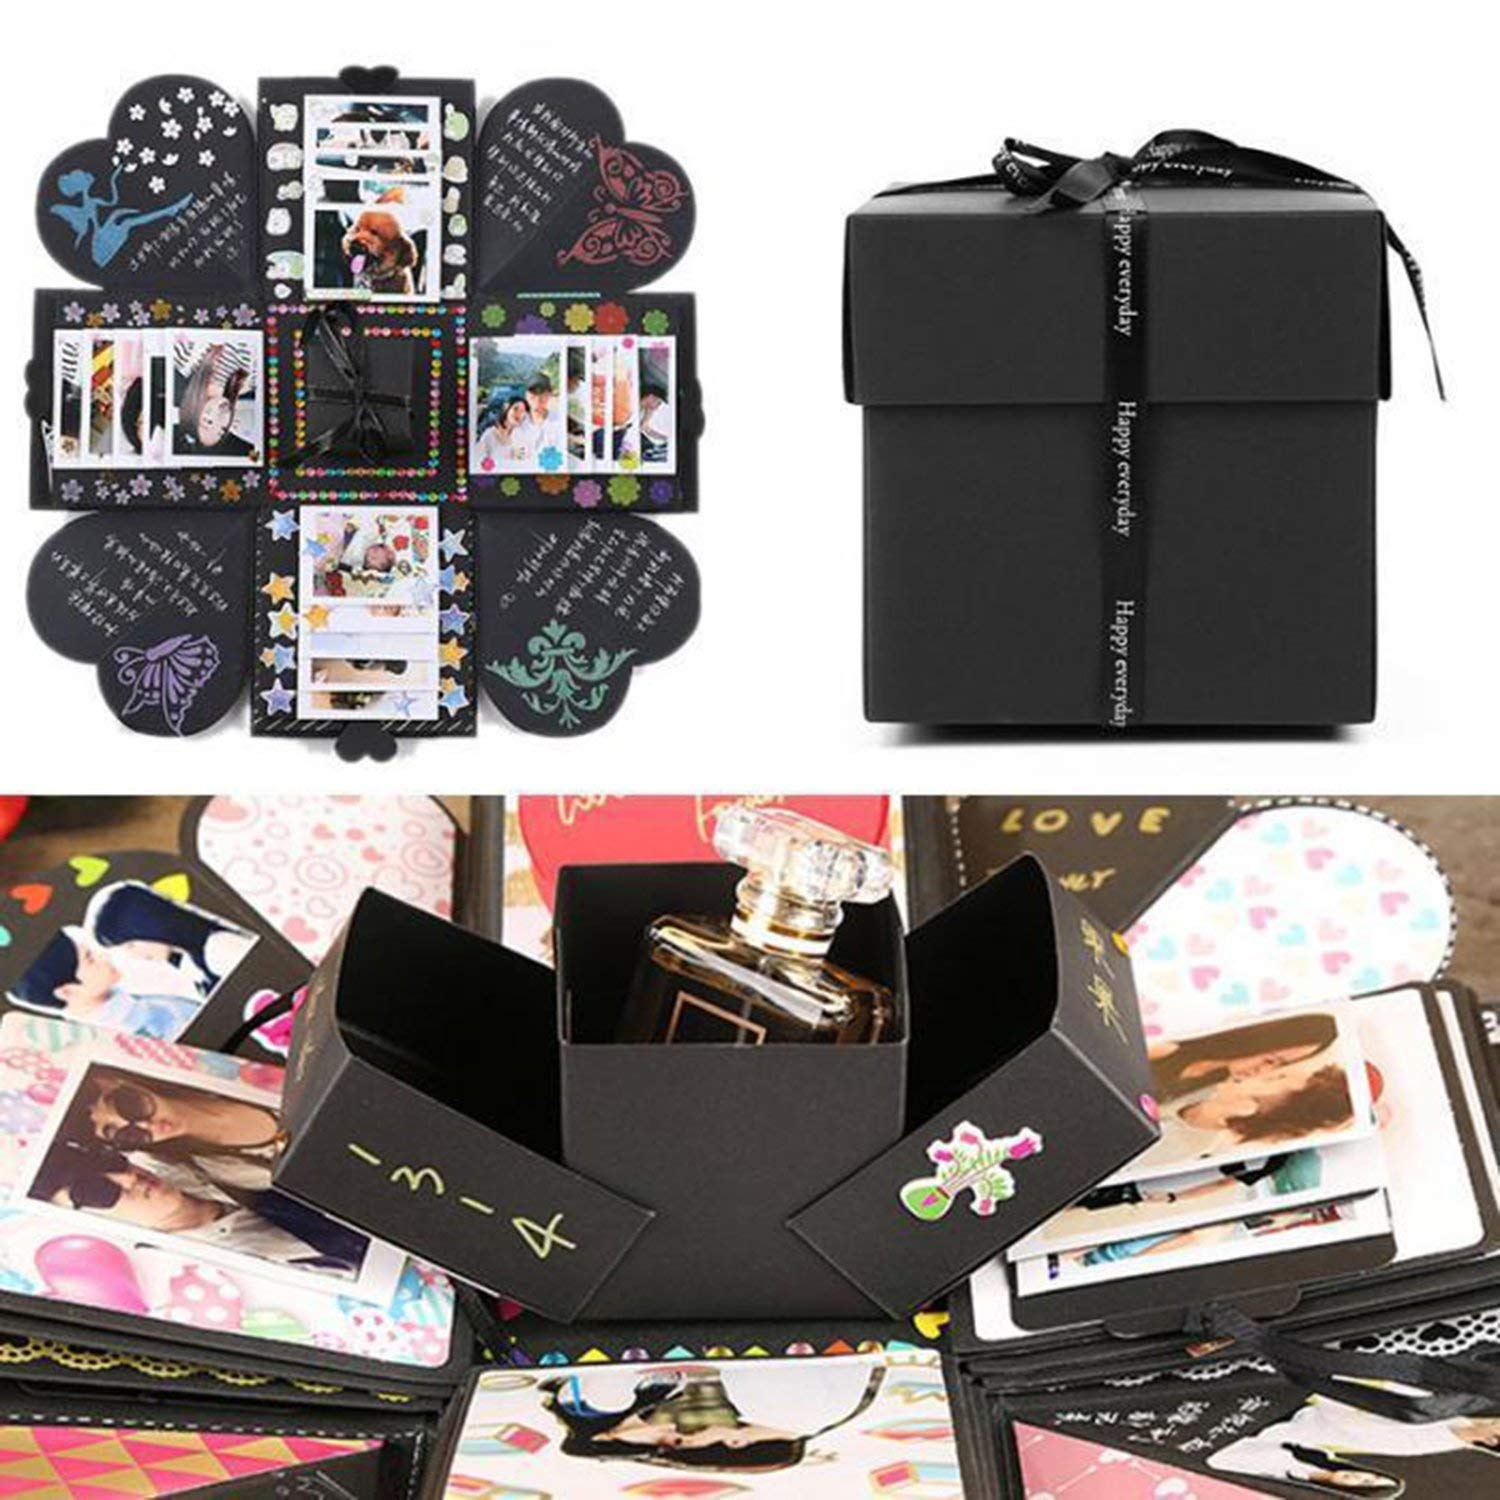 EKKONG Creative Explosion Gift Box, DIY Handmade Photo Album Scrapbooking Gift Box for Birthday Party,Valentine's Day & Wedding (Black)